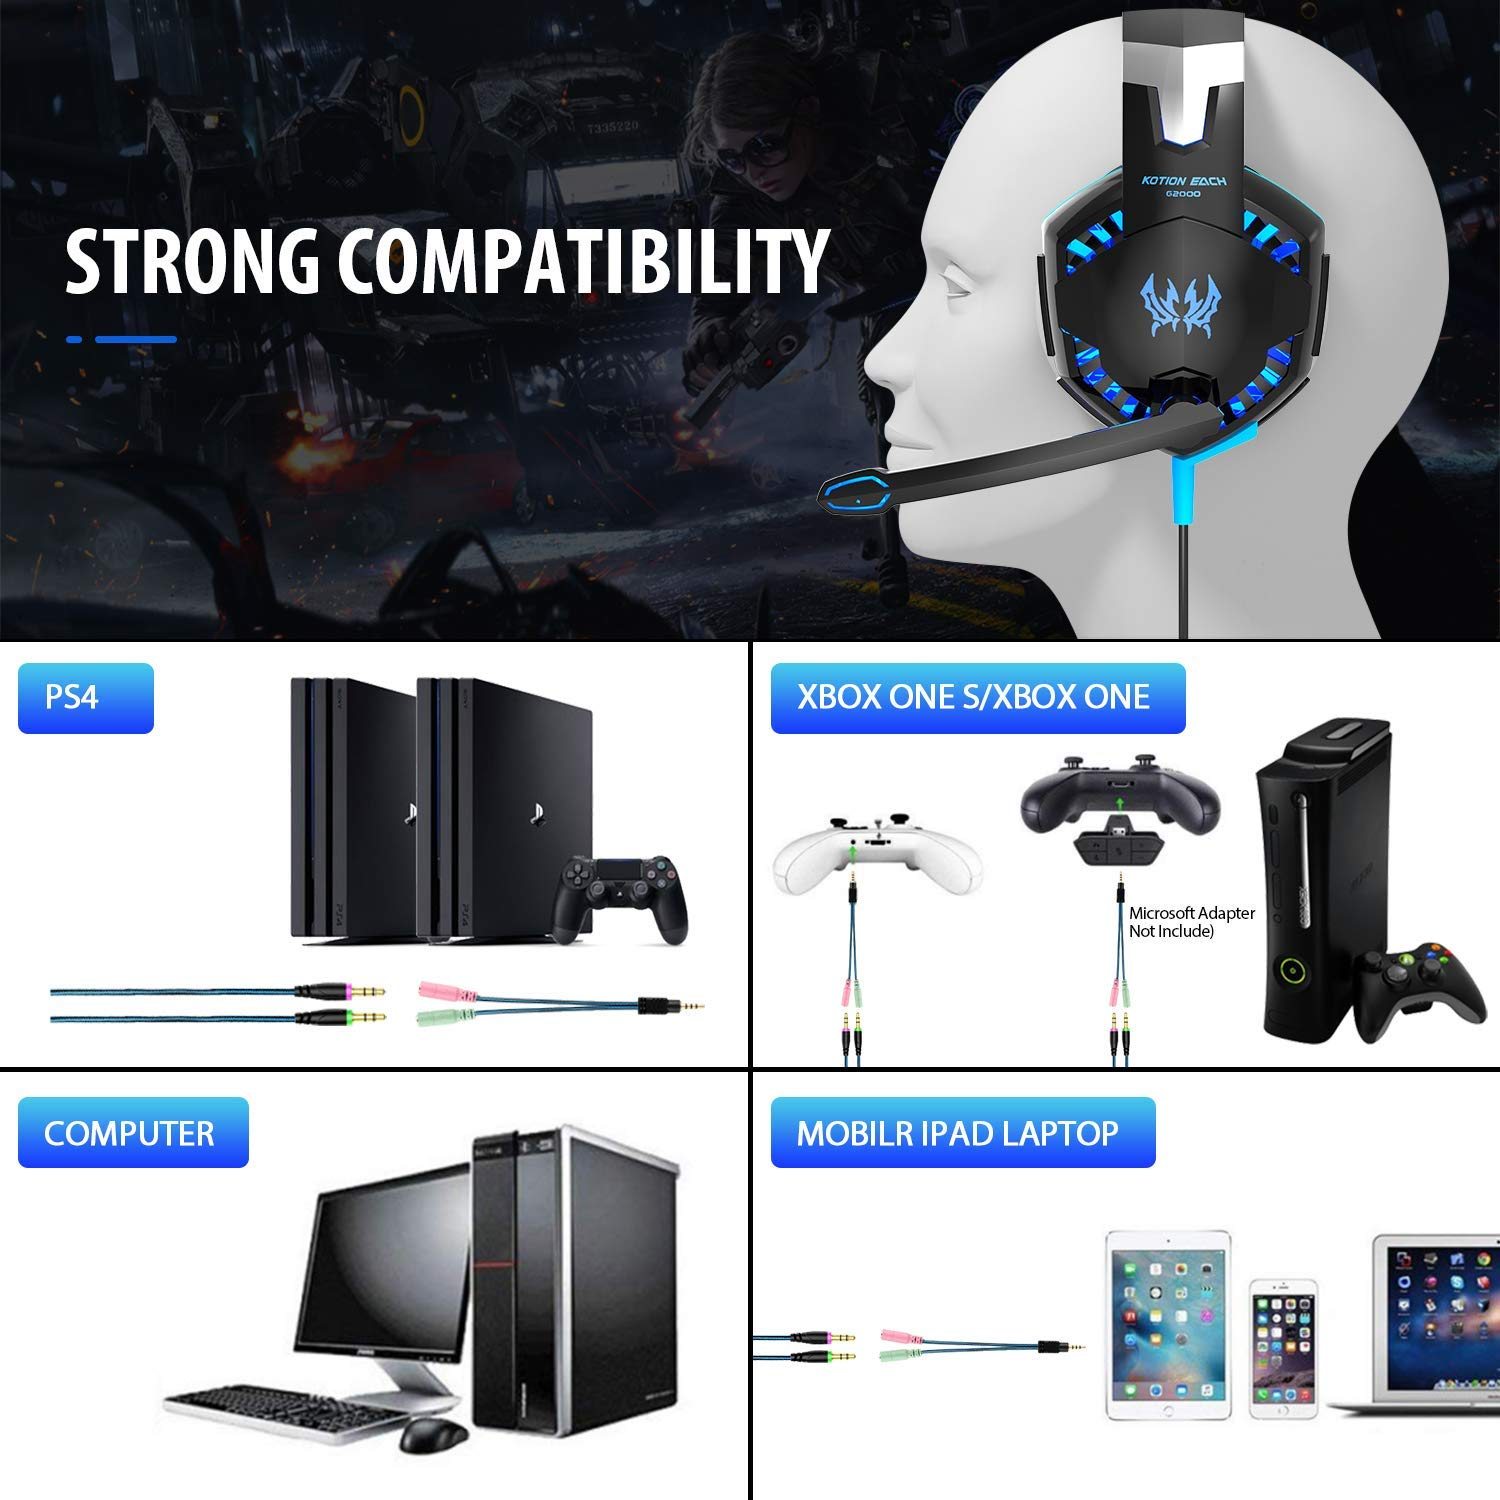 Auriculares Gaming PS4,Cascos Gaming, Auriculares Cascos Gaming con Micrófono Juego Gaming Headset con 3.5mm Jack Luz LED Compatible con PC/Xbox One/Nintendo Switch,Bass Surround y Bajo Ruido